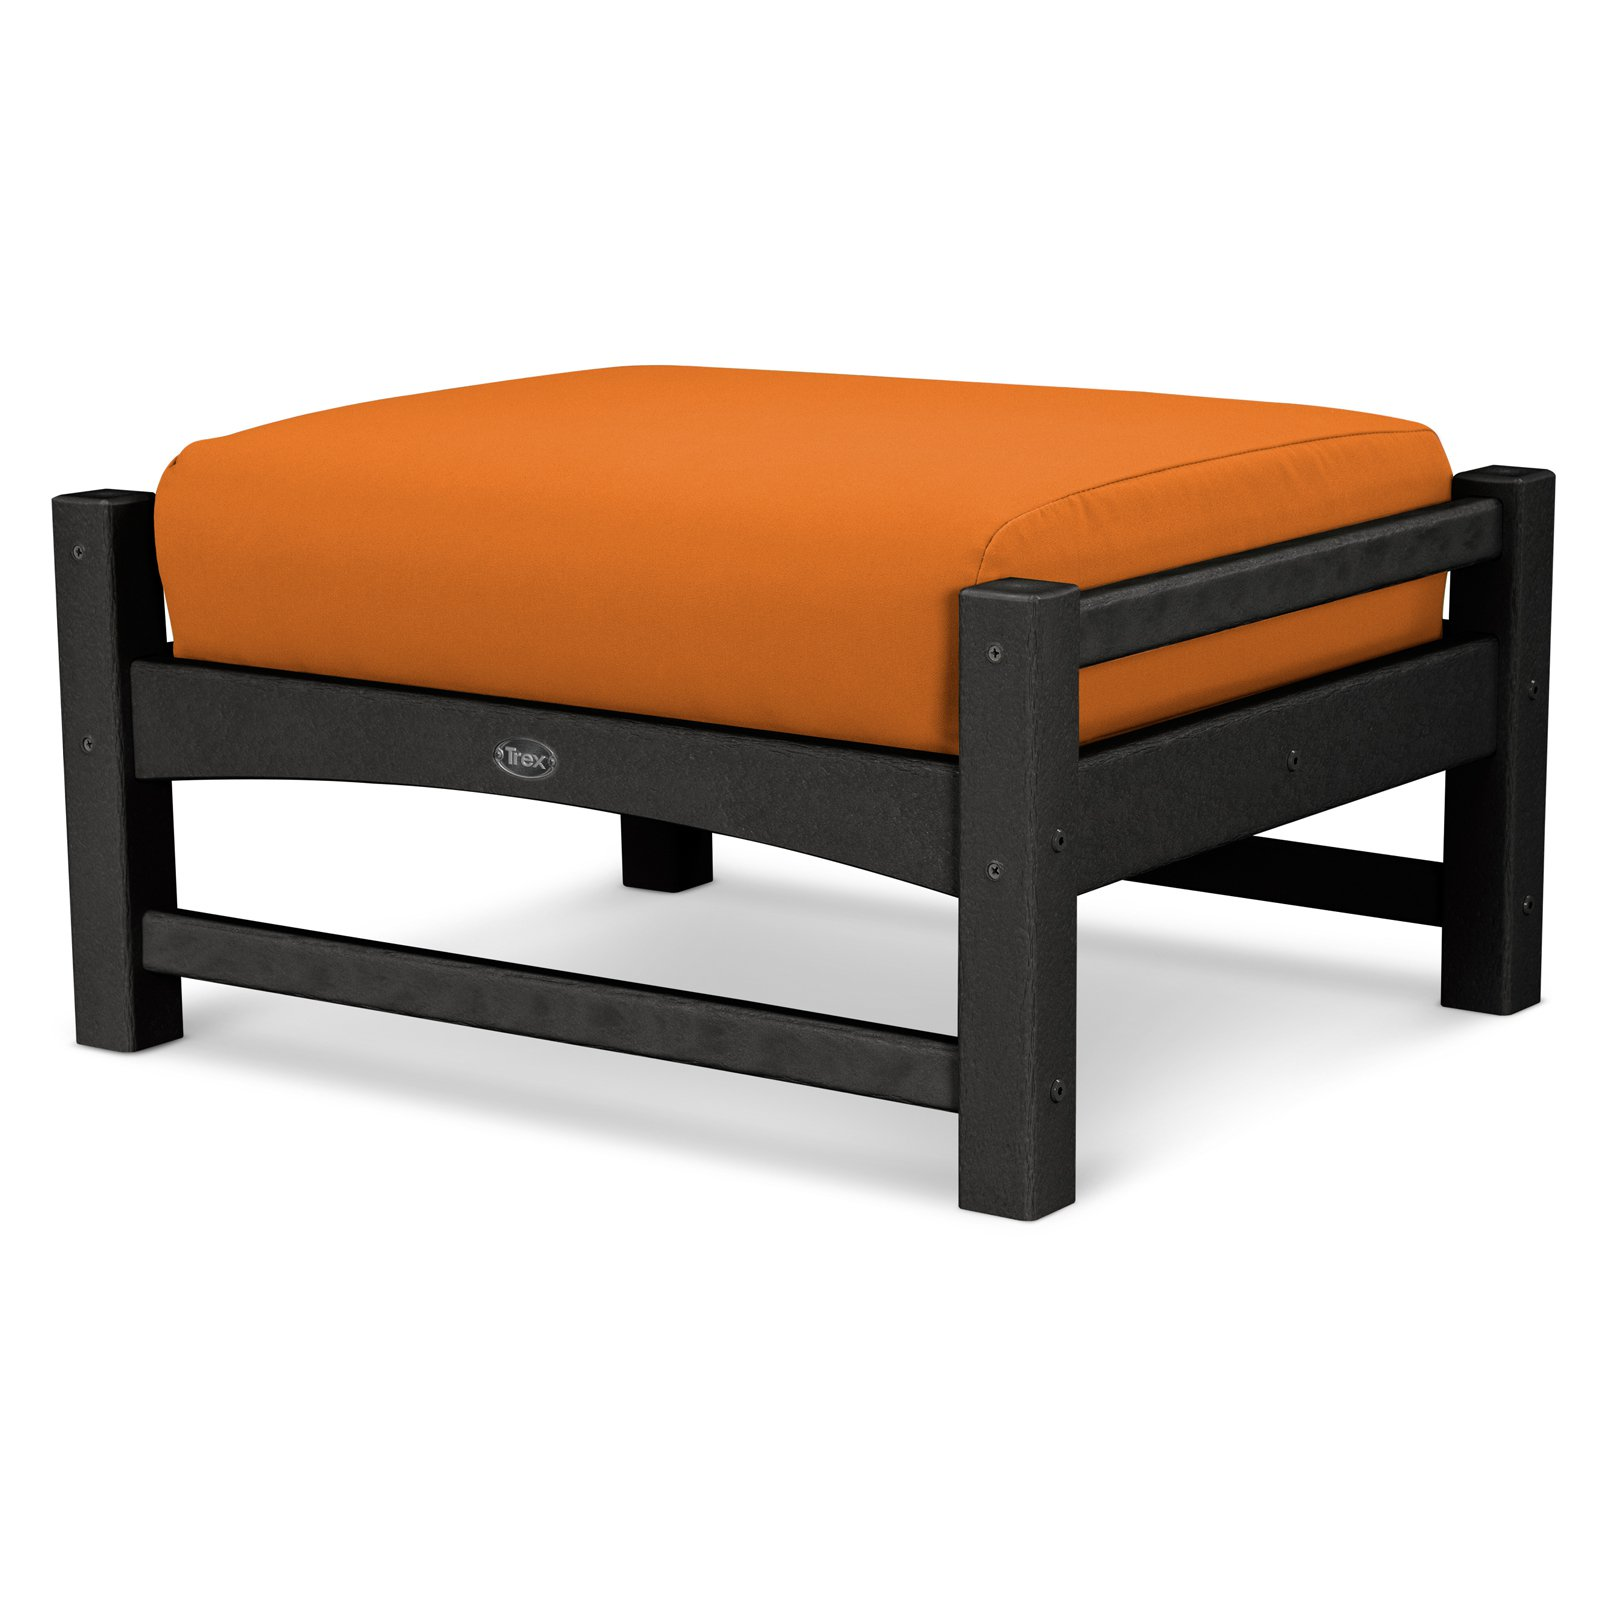 Trex Outdoor Furniture Recycled Plastic Rockport Club Ottoman with Sunbrella Cushion